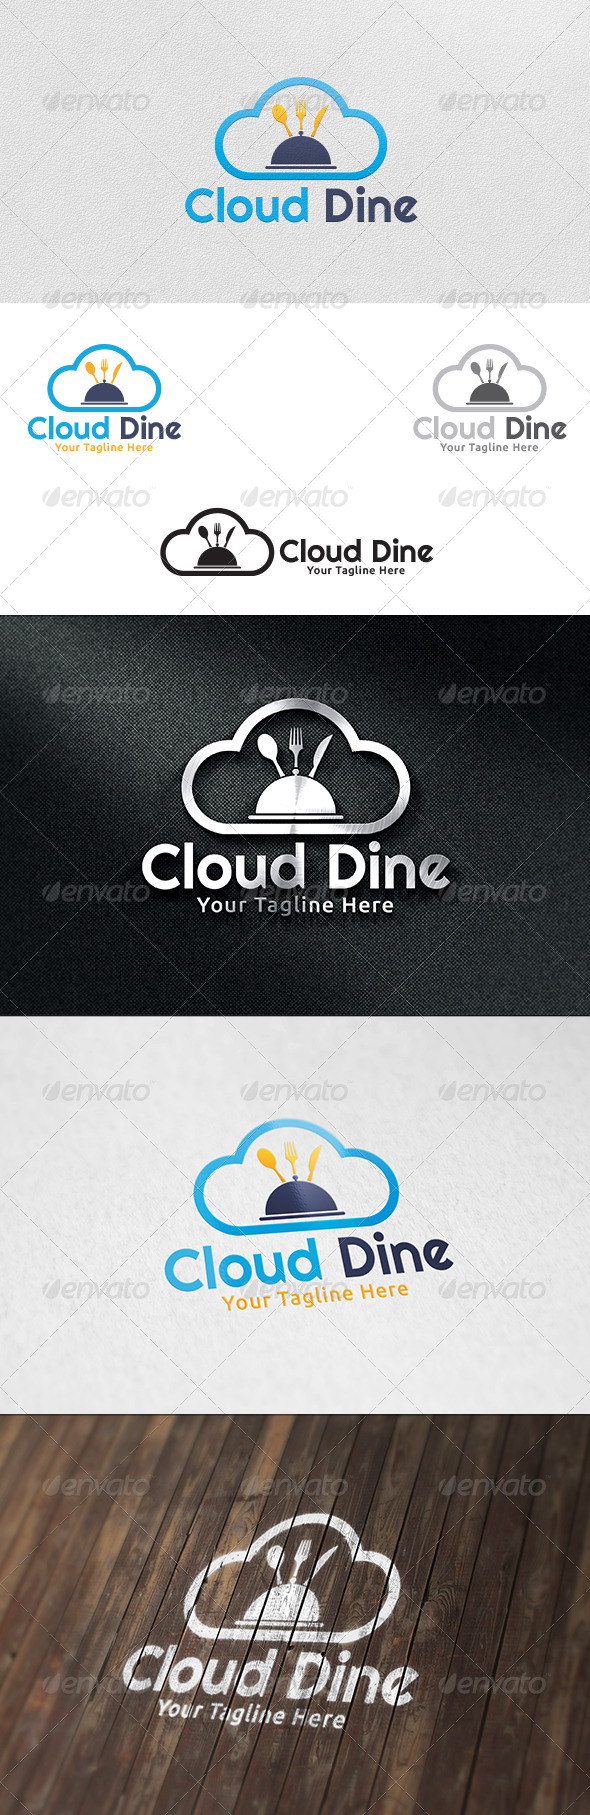 Cloud Dine Logo Template